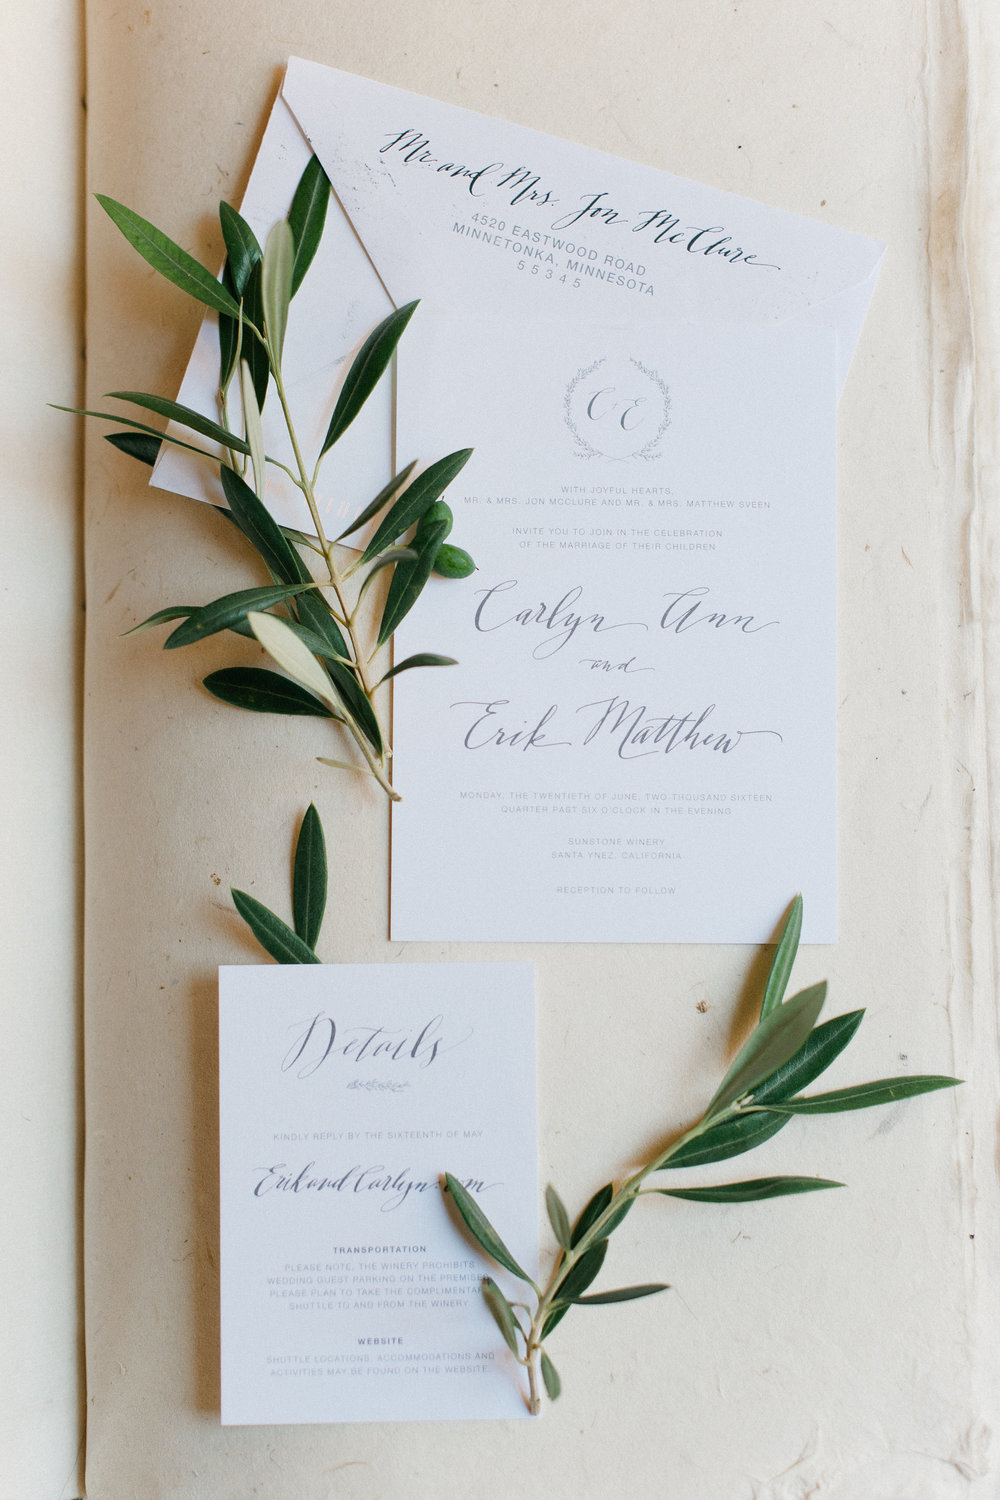 Digital Invitation - Photography by Melissa Oholendt Photography